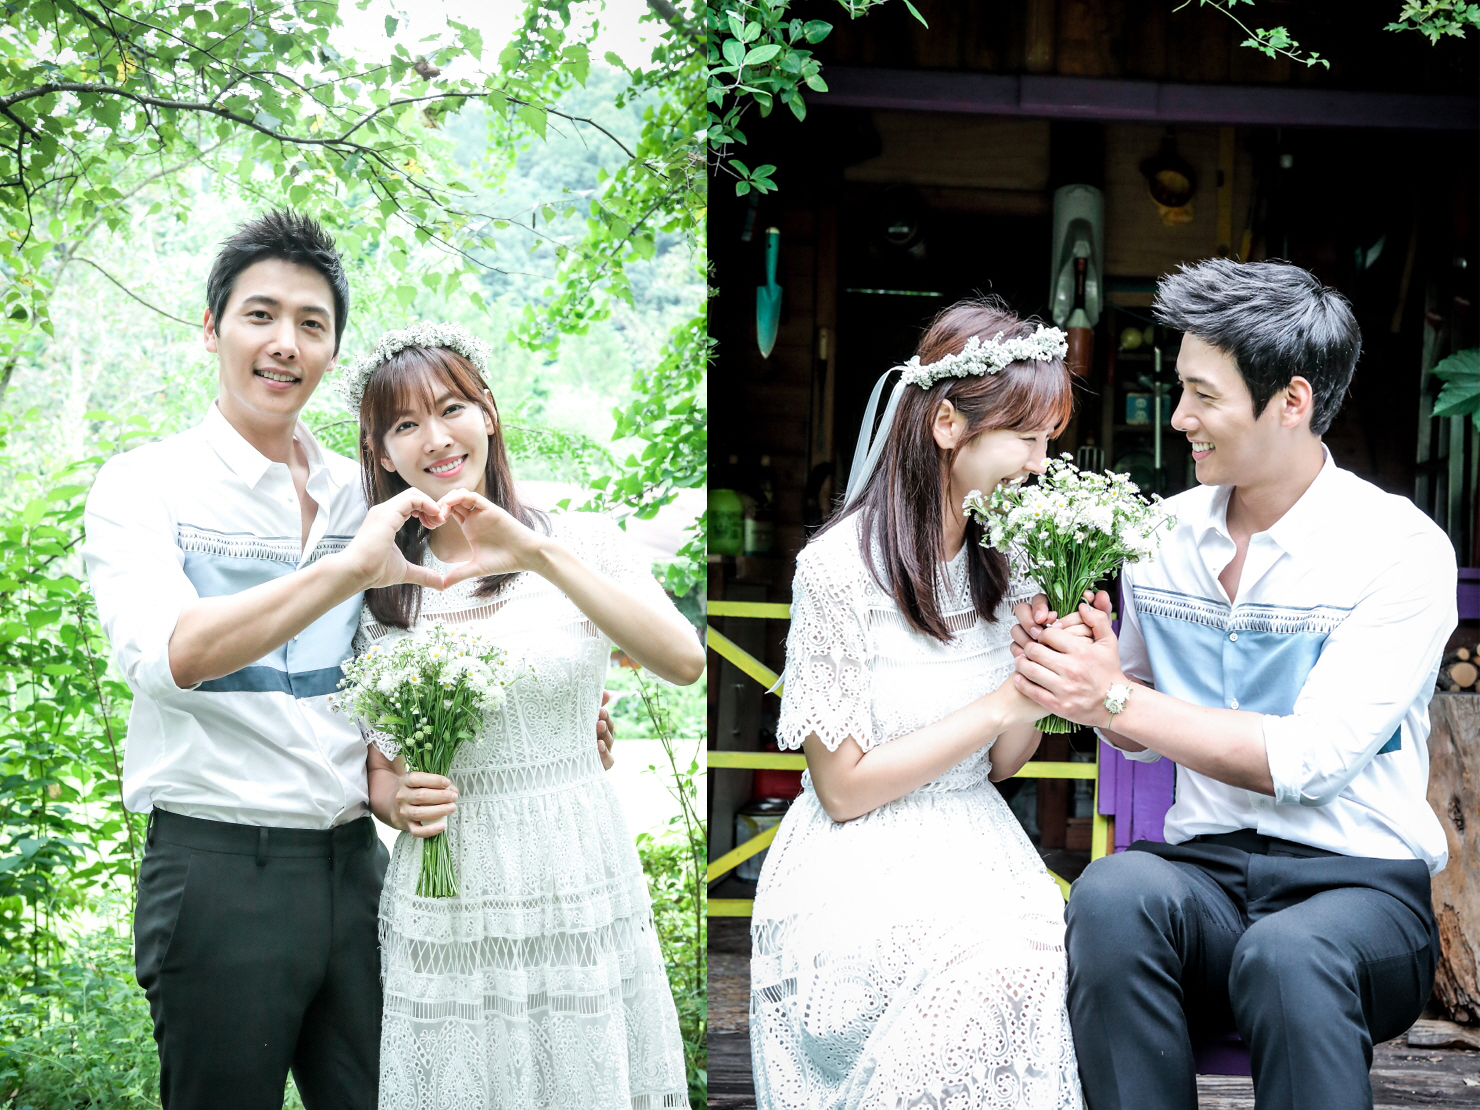 So eun seo dating after divorce 7